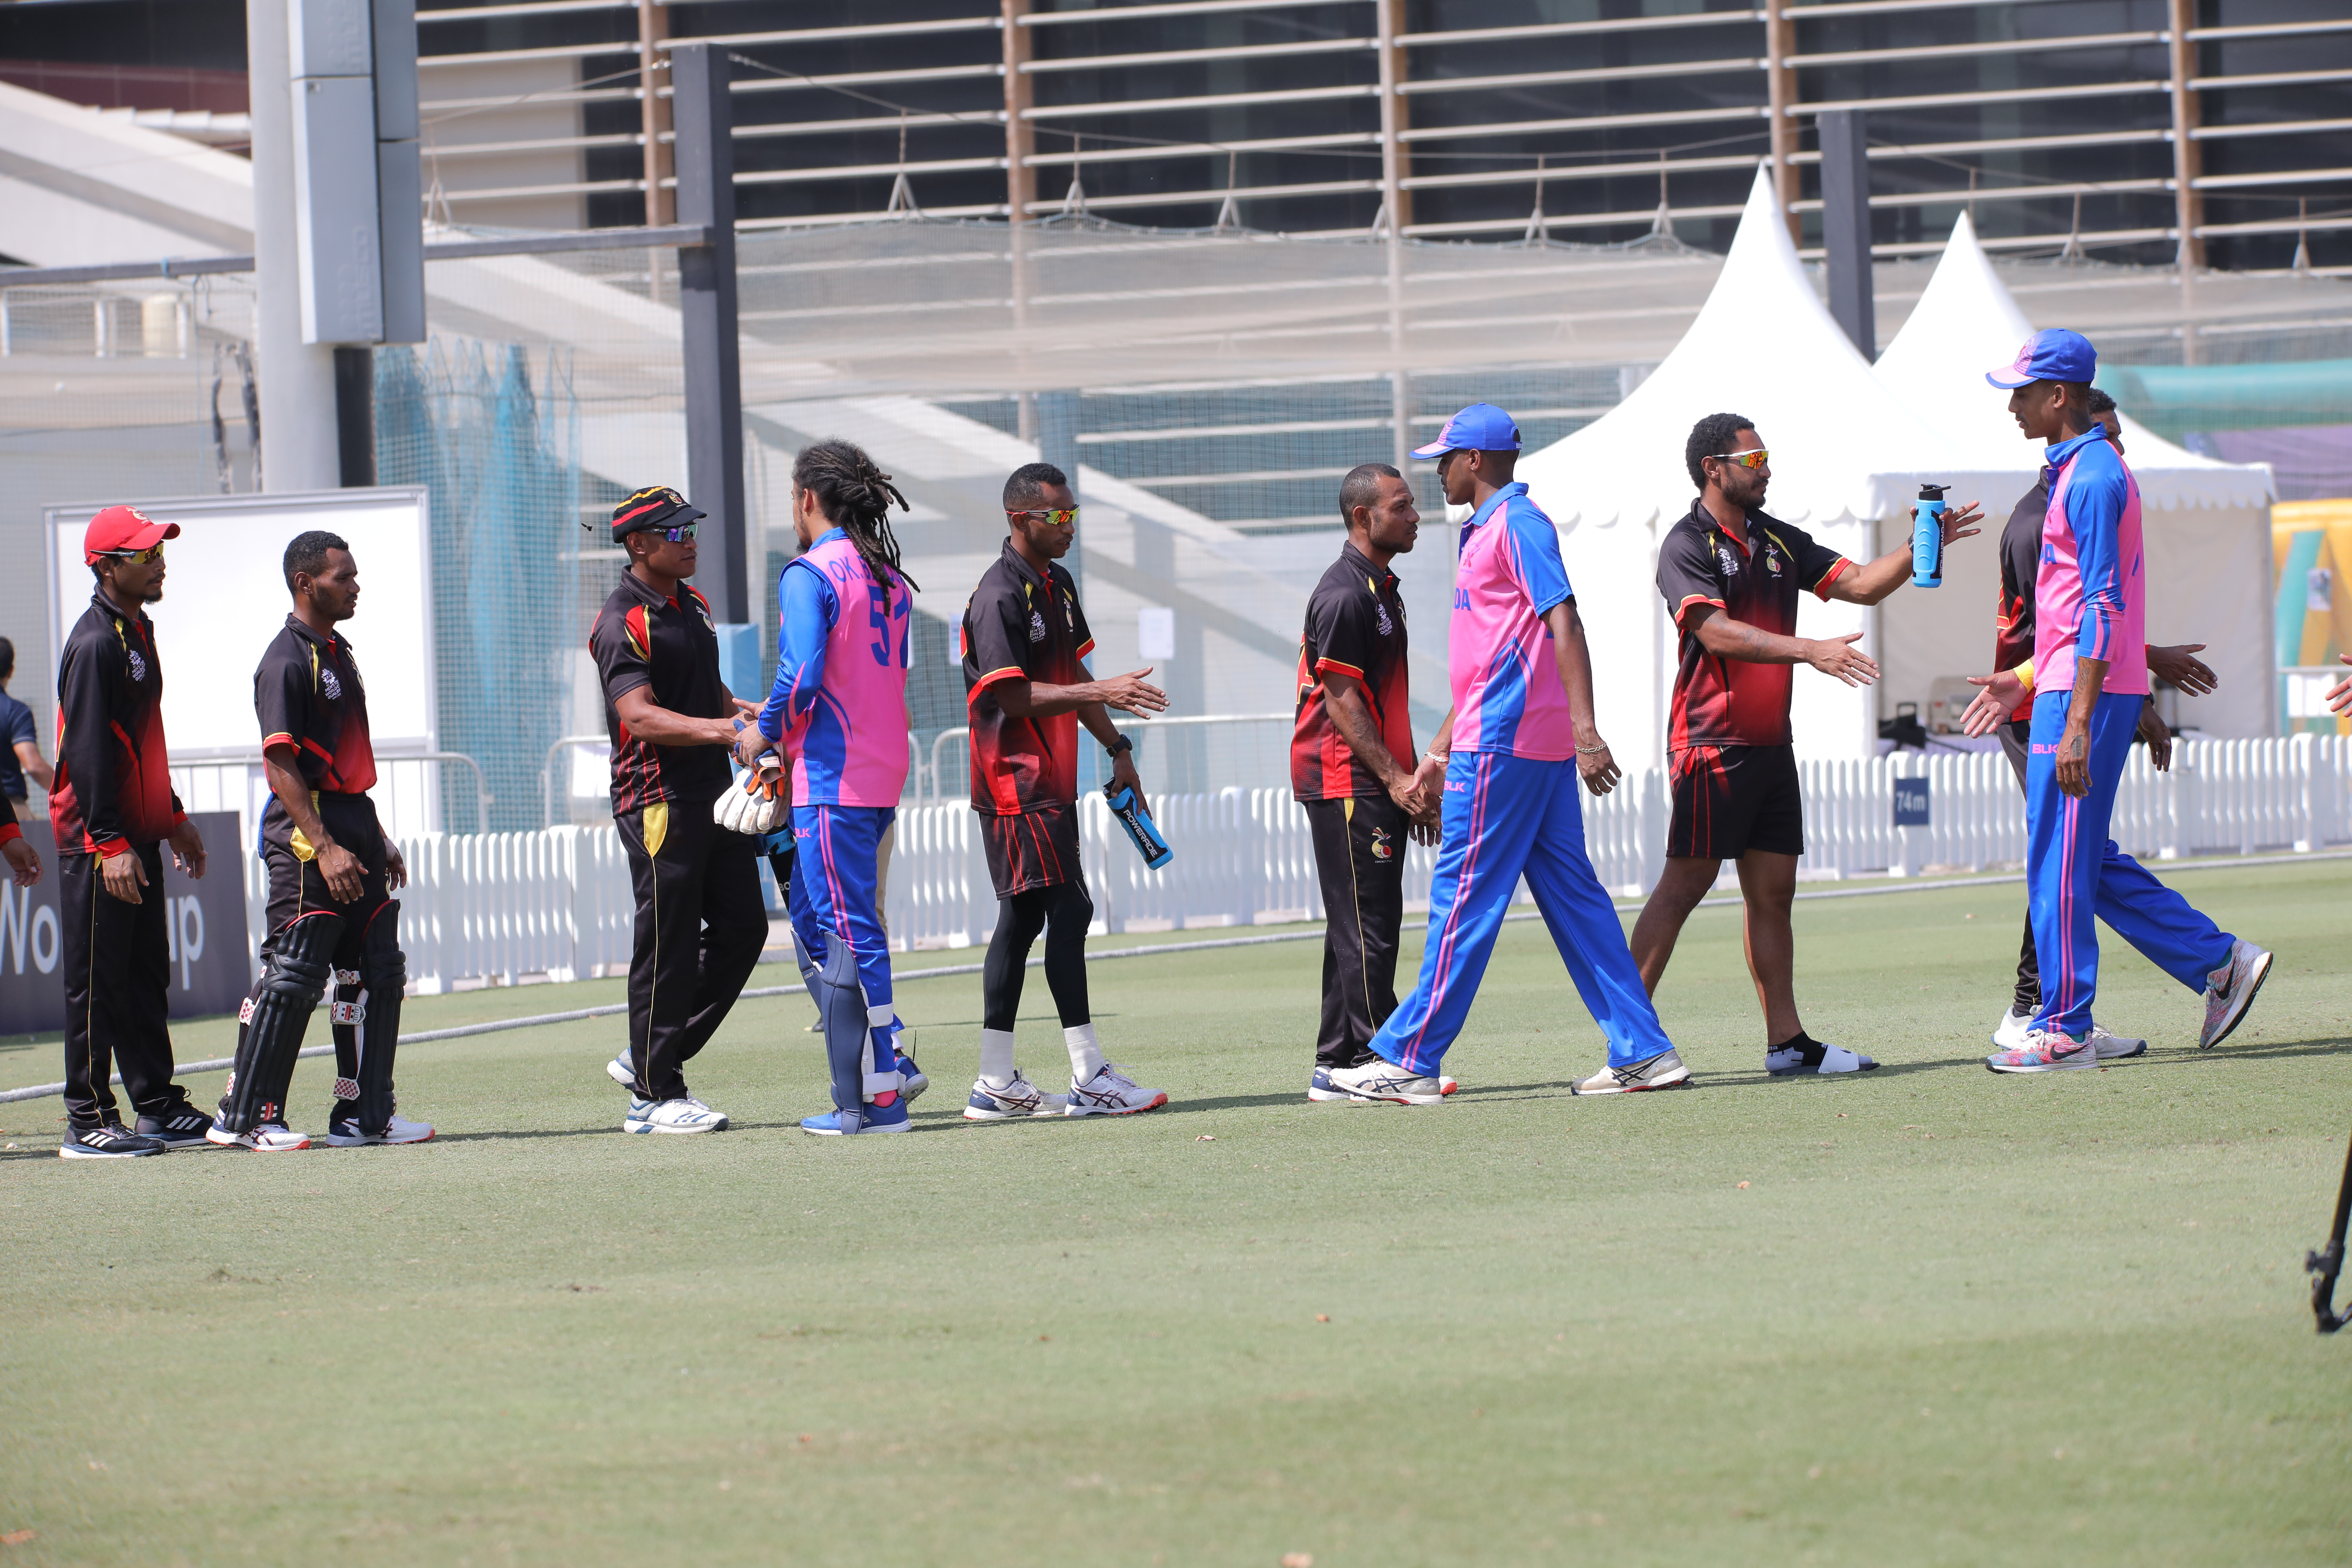 Bermuda V 5th Match Group A Icc Men S T20 World Cup